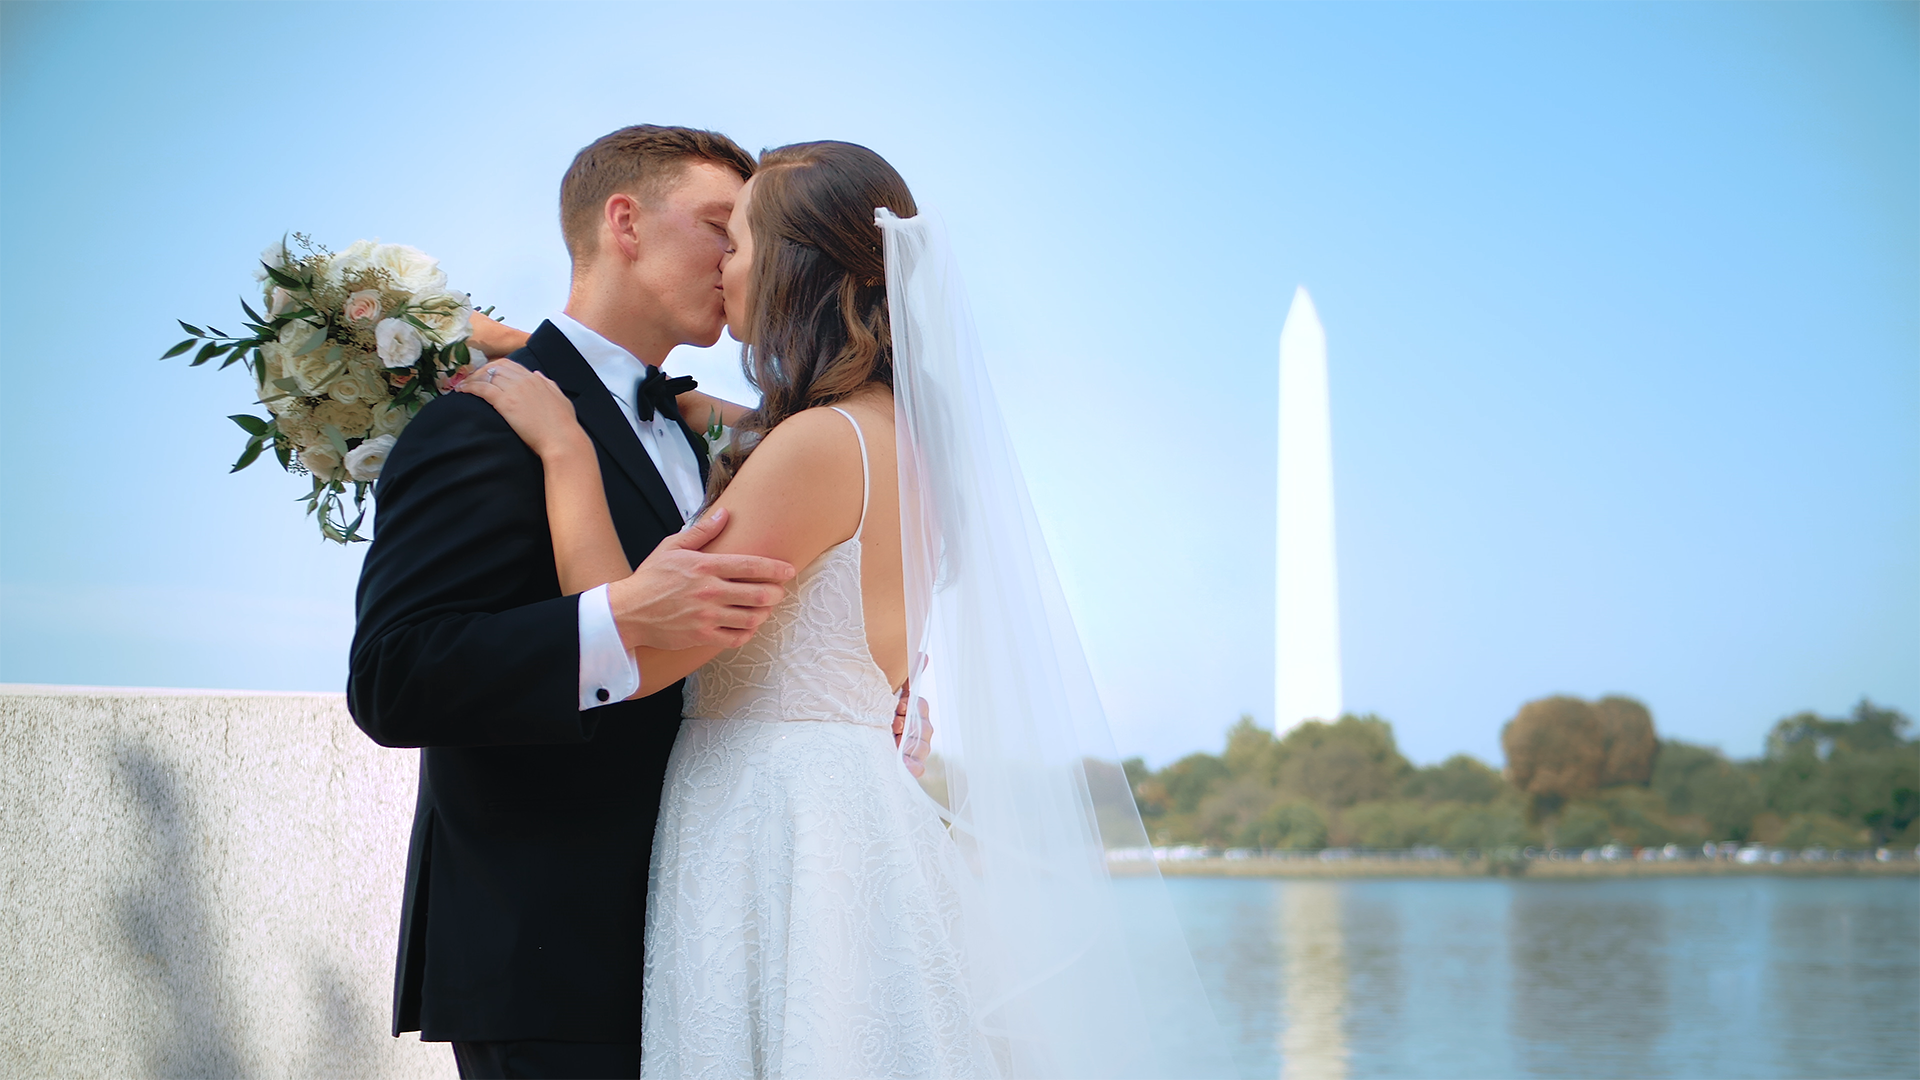 Sabrina + Conor | Arlington, Virginia | Army Navy Country Club